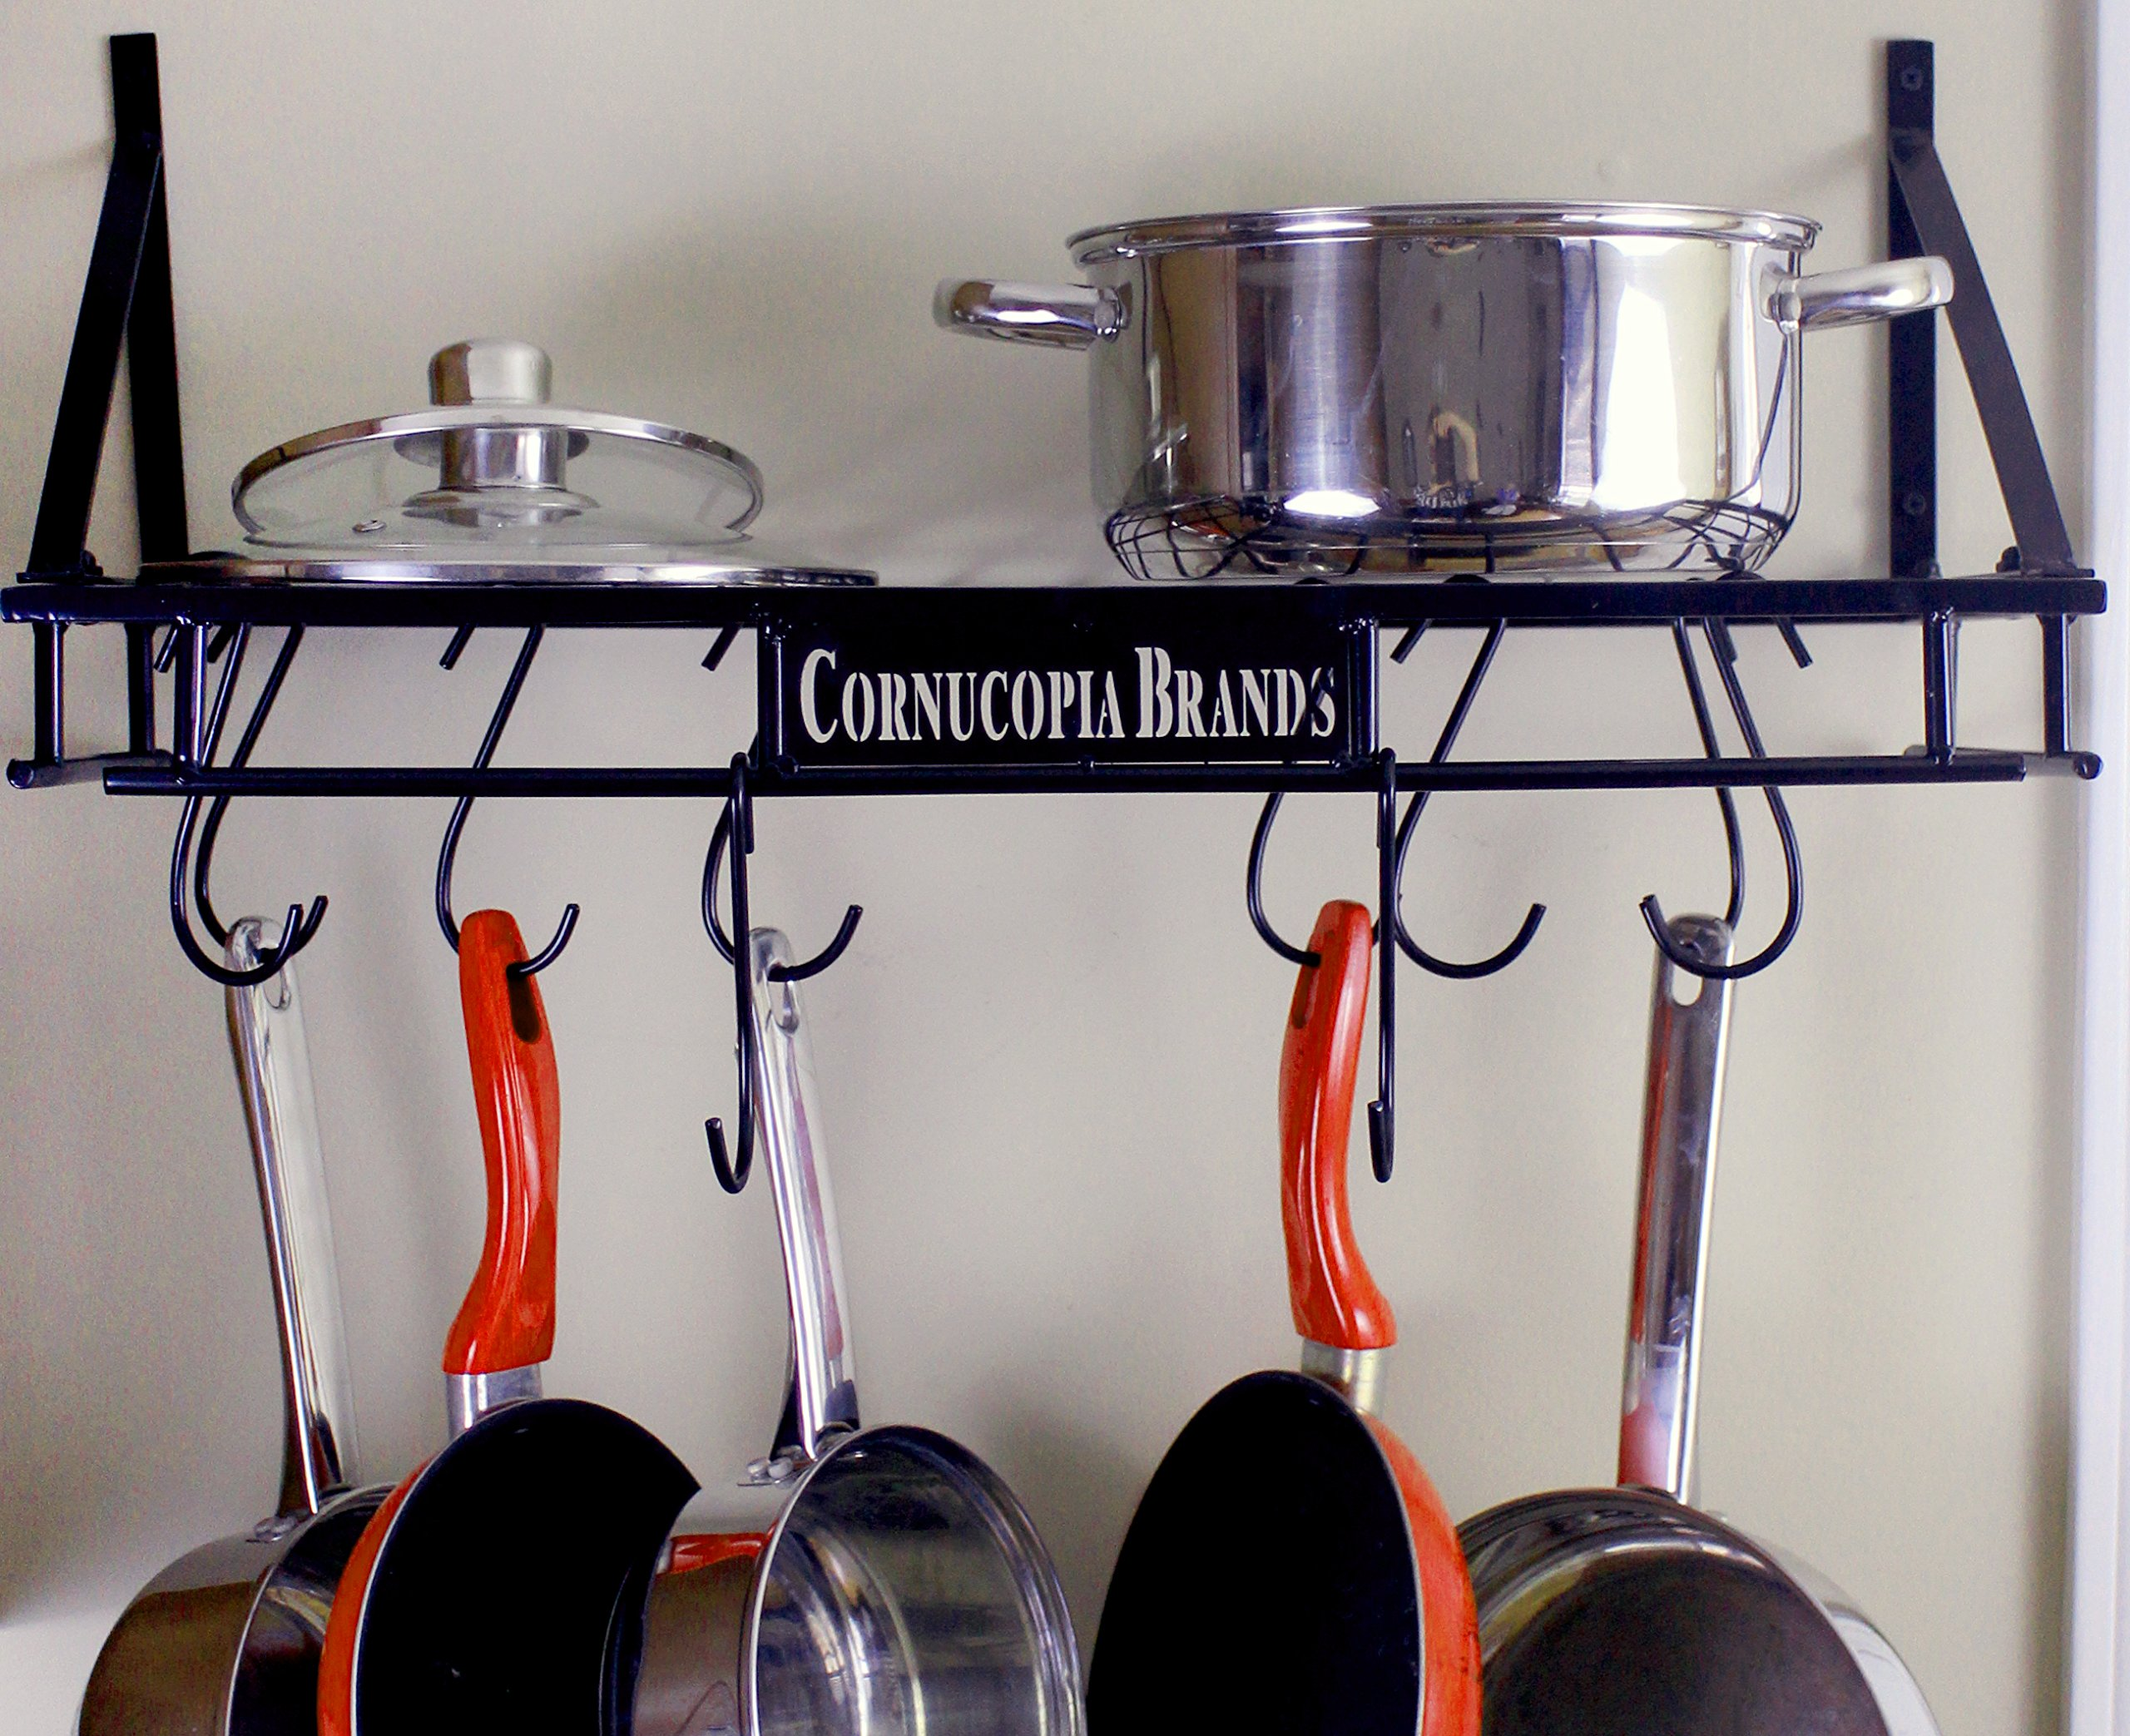 Wall-Mounted Pot Hanging Rack, 24 by 10 Inches, All-Black Decorative Kitchen Shelf w/ 10 S-Hooks by Cornucopia Brands (Image #2)